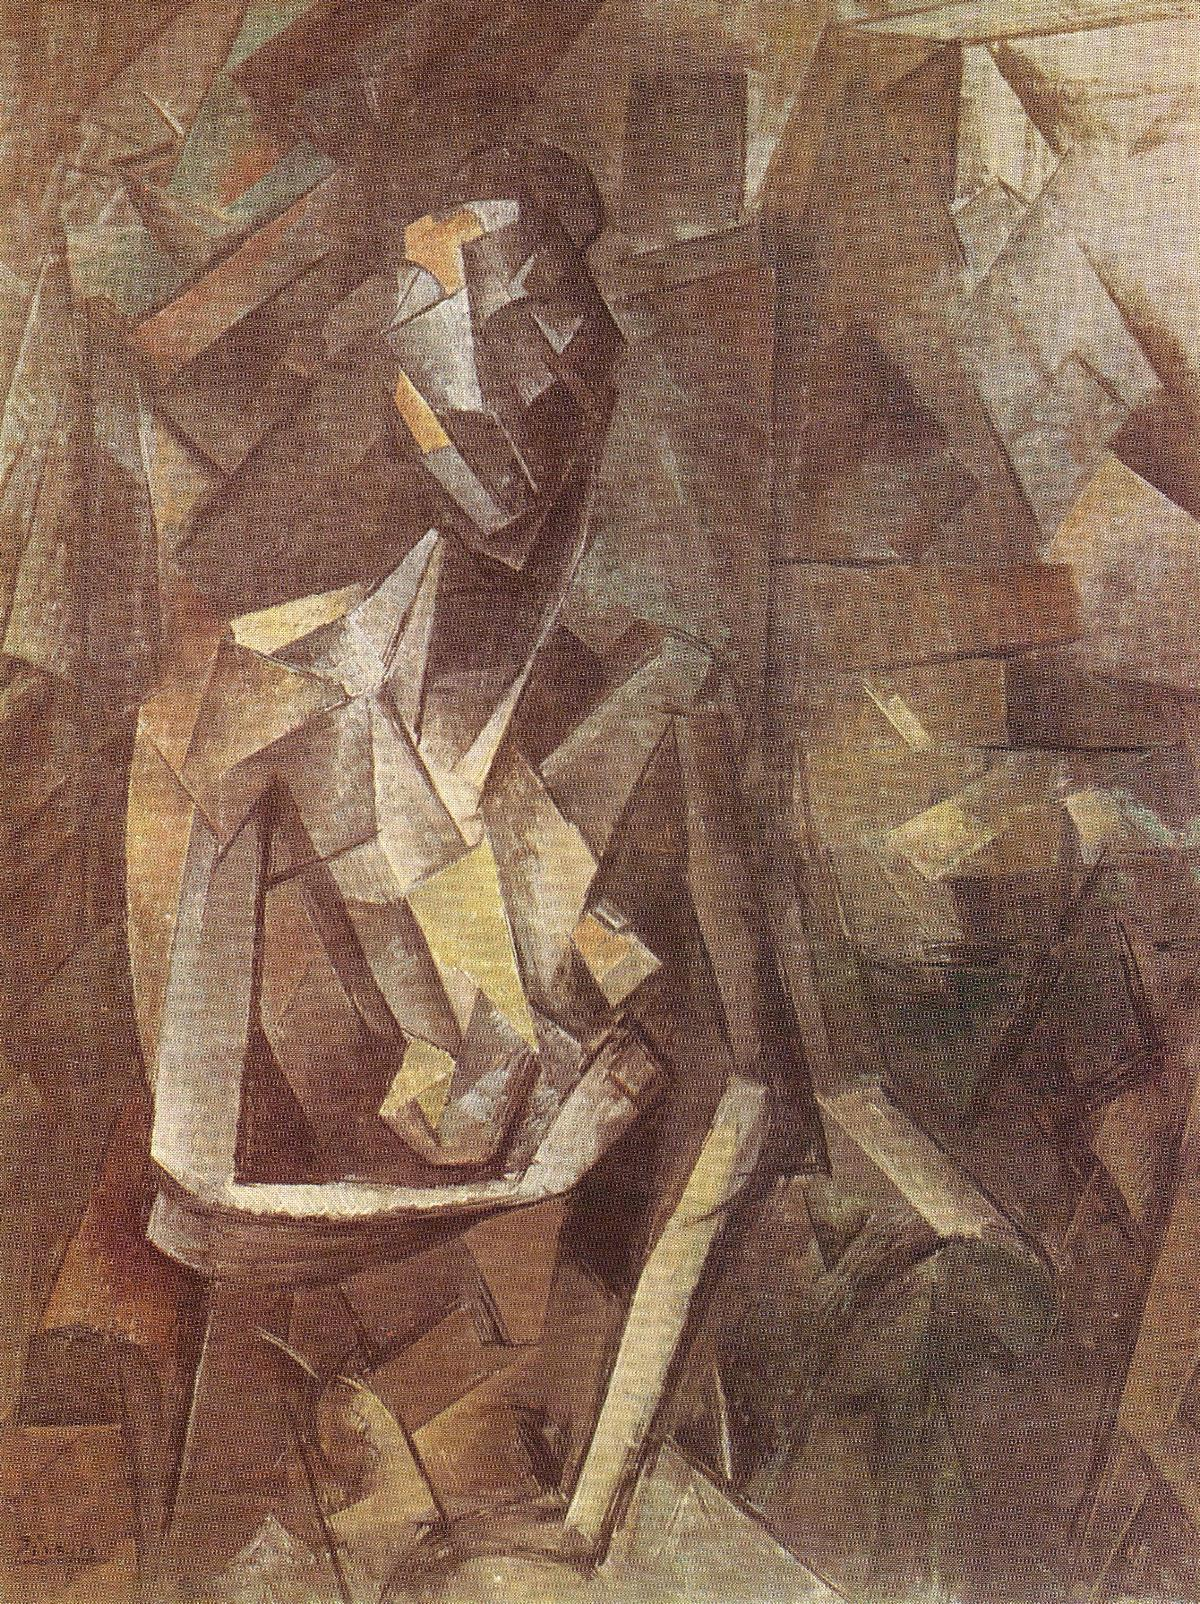 Seated-Nude-(1909-10)